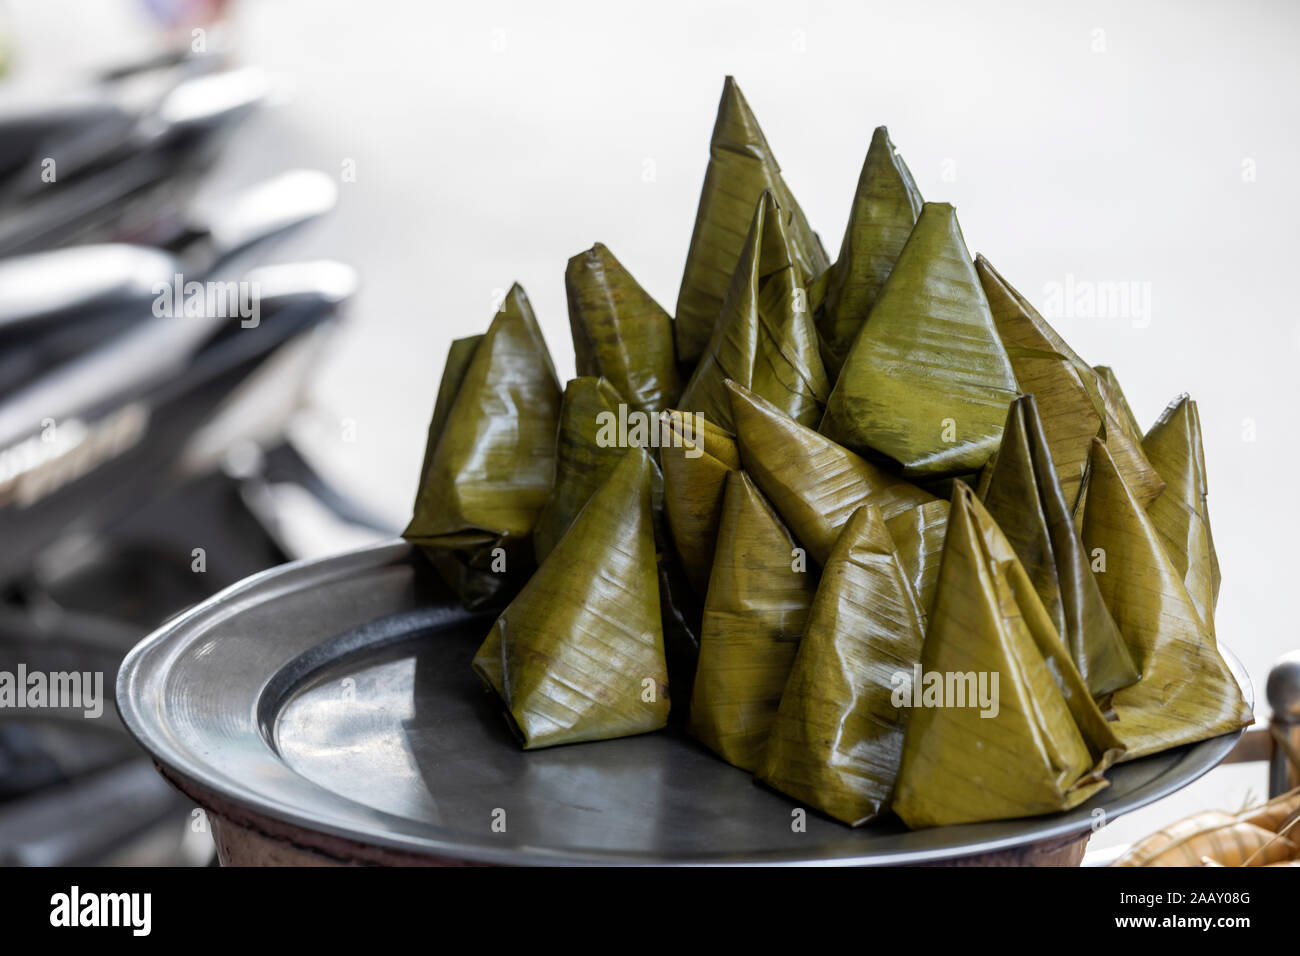 Banh It Is A Vietnamese Dumpling And Street Food In A Pyramid Shape Containing Rice And Mung Beans Cooked In Coconut Juice Wrapping Is A Banana Leaf Stock Photo Alamy